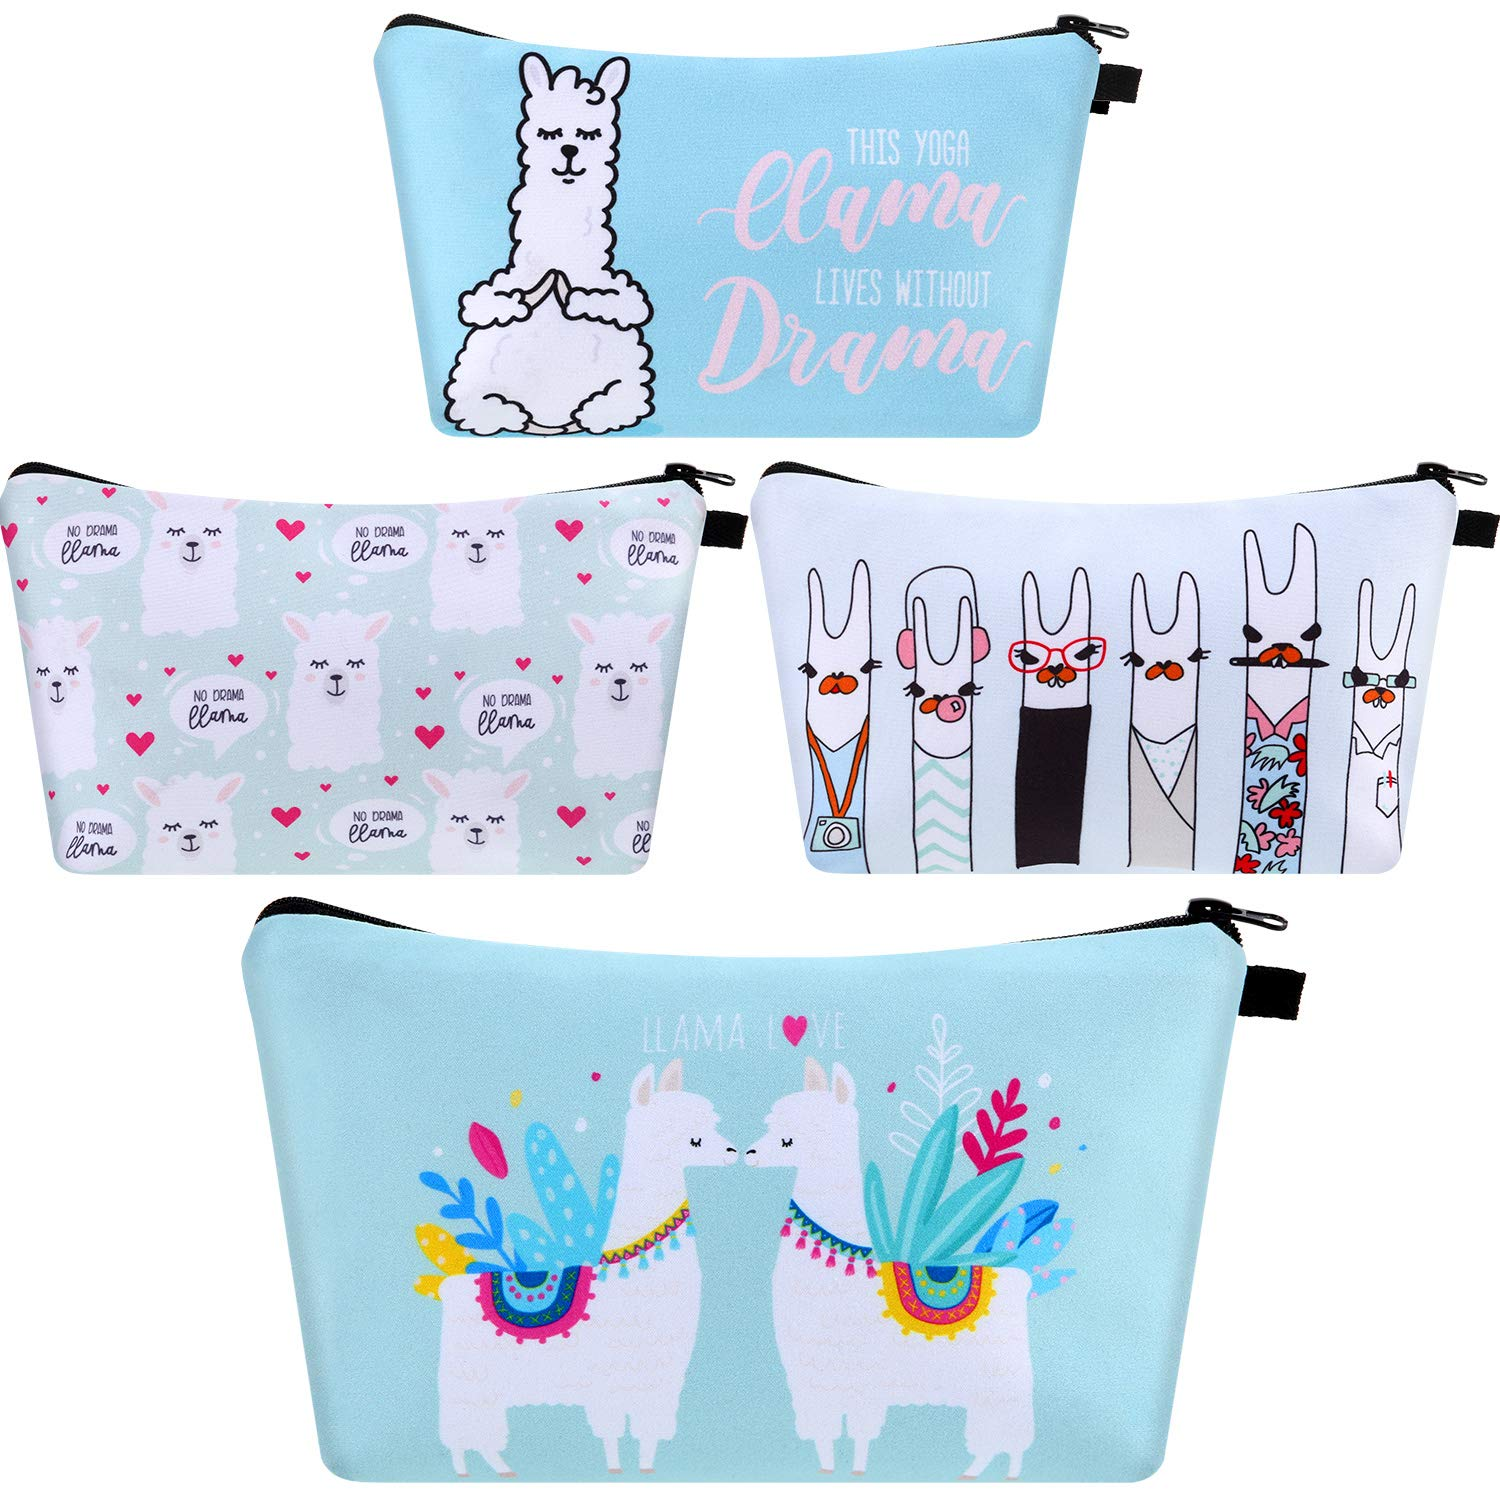 4 Pieces Llama Makeup Bag Funny Cartoon Llama Cosmetic Bags Toiletry Handbag Waterproof Brushes Storage Pouch for Women Girls Purse